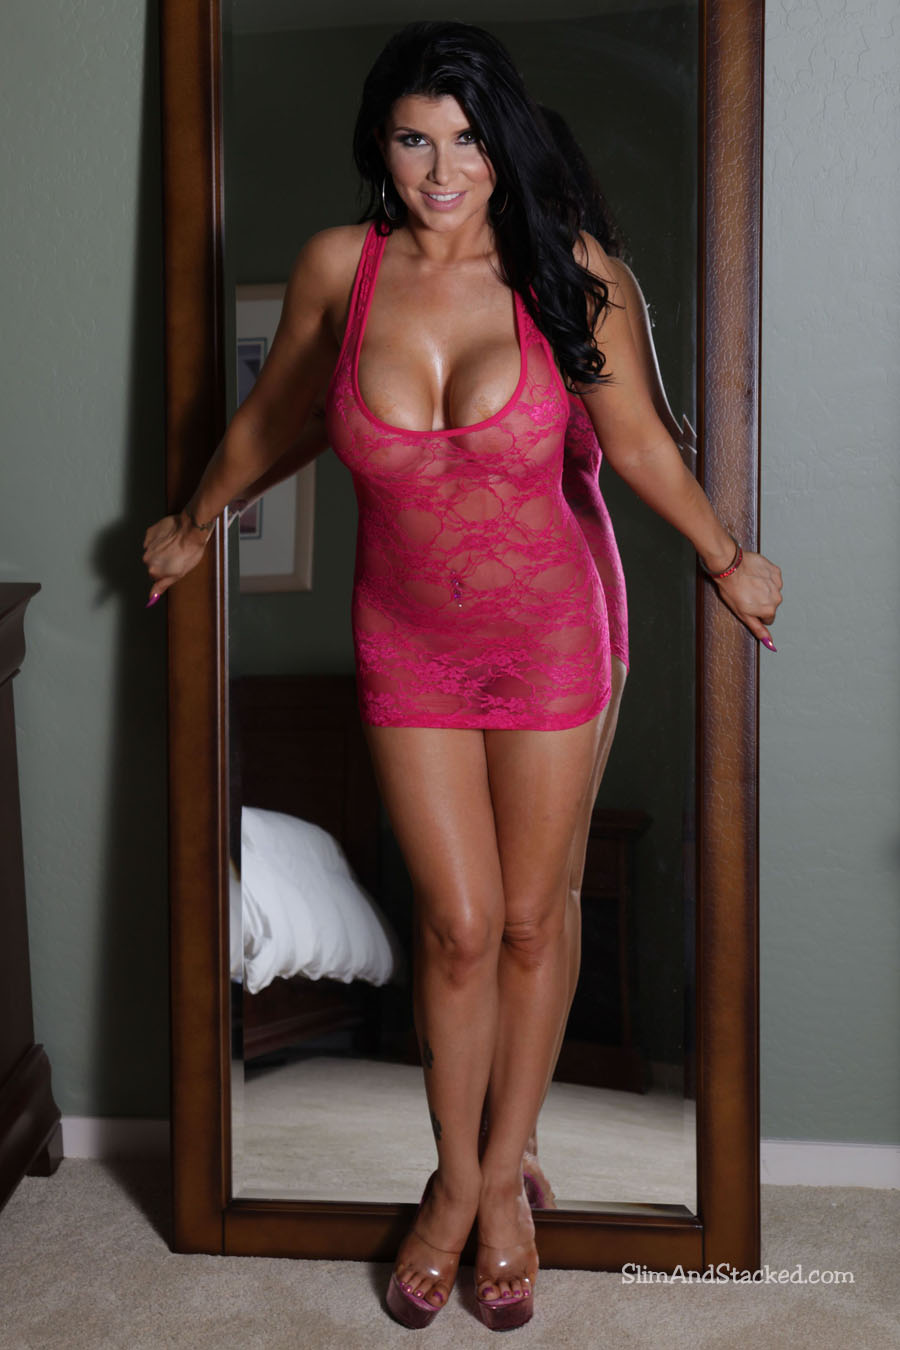 Mirror, mirror on the wall.  Is Romi Rain totally hot-hot-hot, or what?  Romi sizzles in a coral mini-dress that reveals what it barely conceals.  And she doesn't wear it for long!  See for yourself by owning this set of ultra-high resolution (3000 pixel) images.  Contact dezertimagez@gmail.com for set pricing.